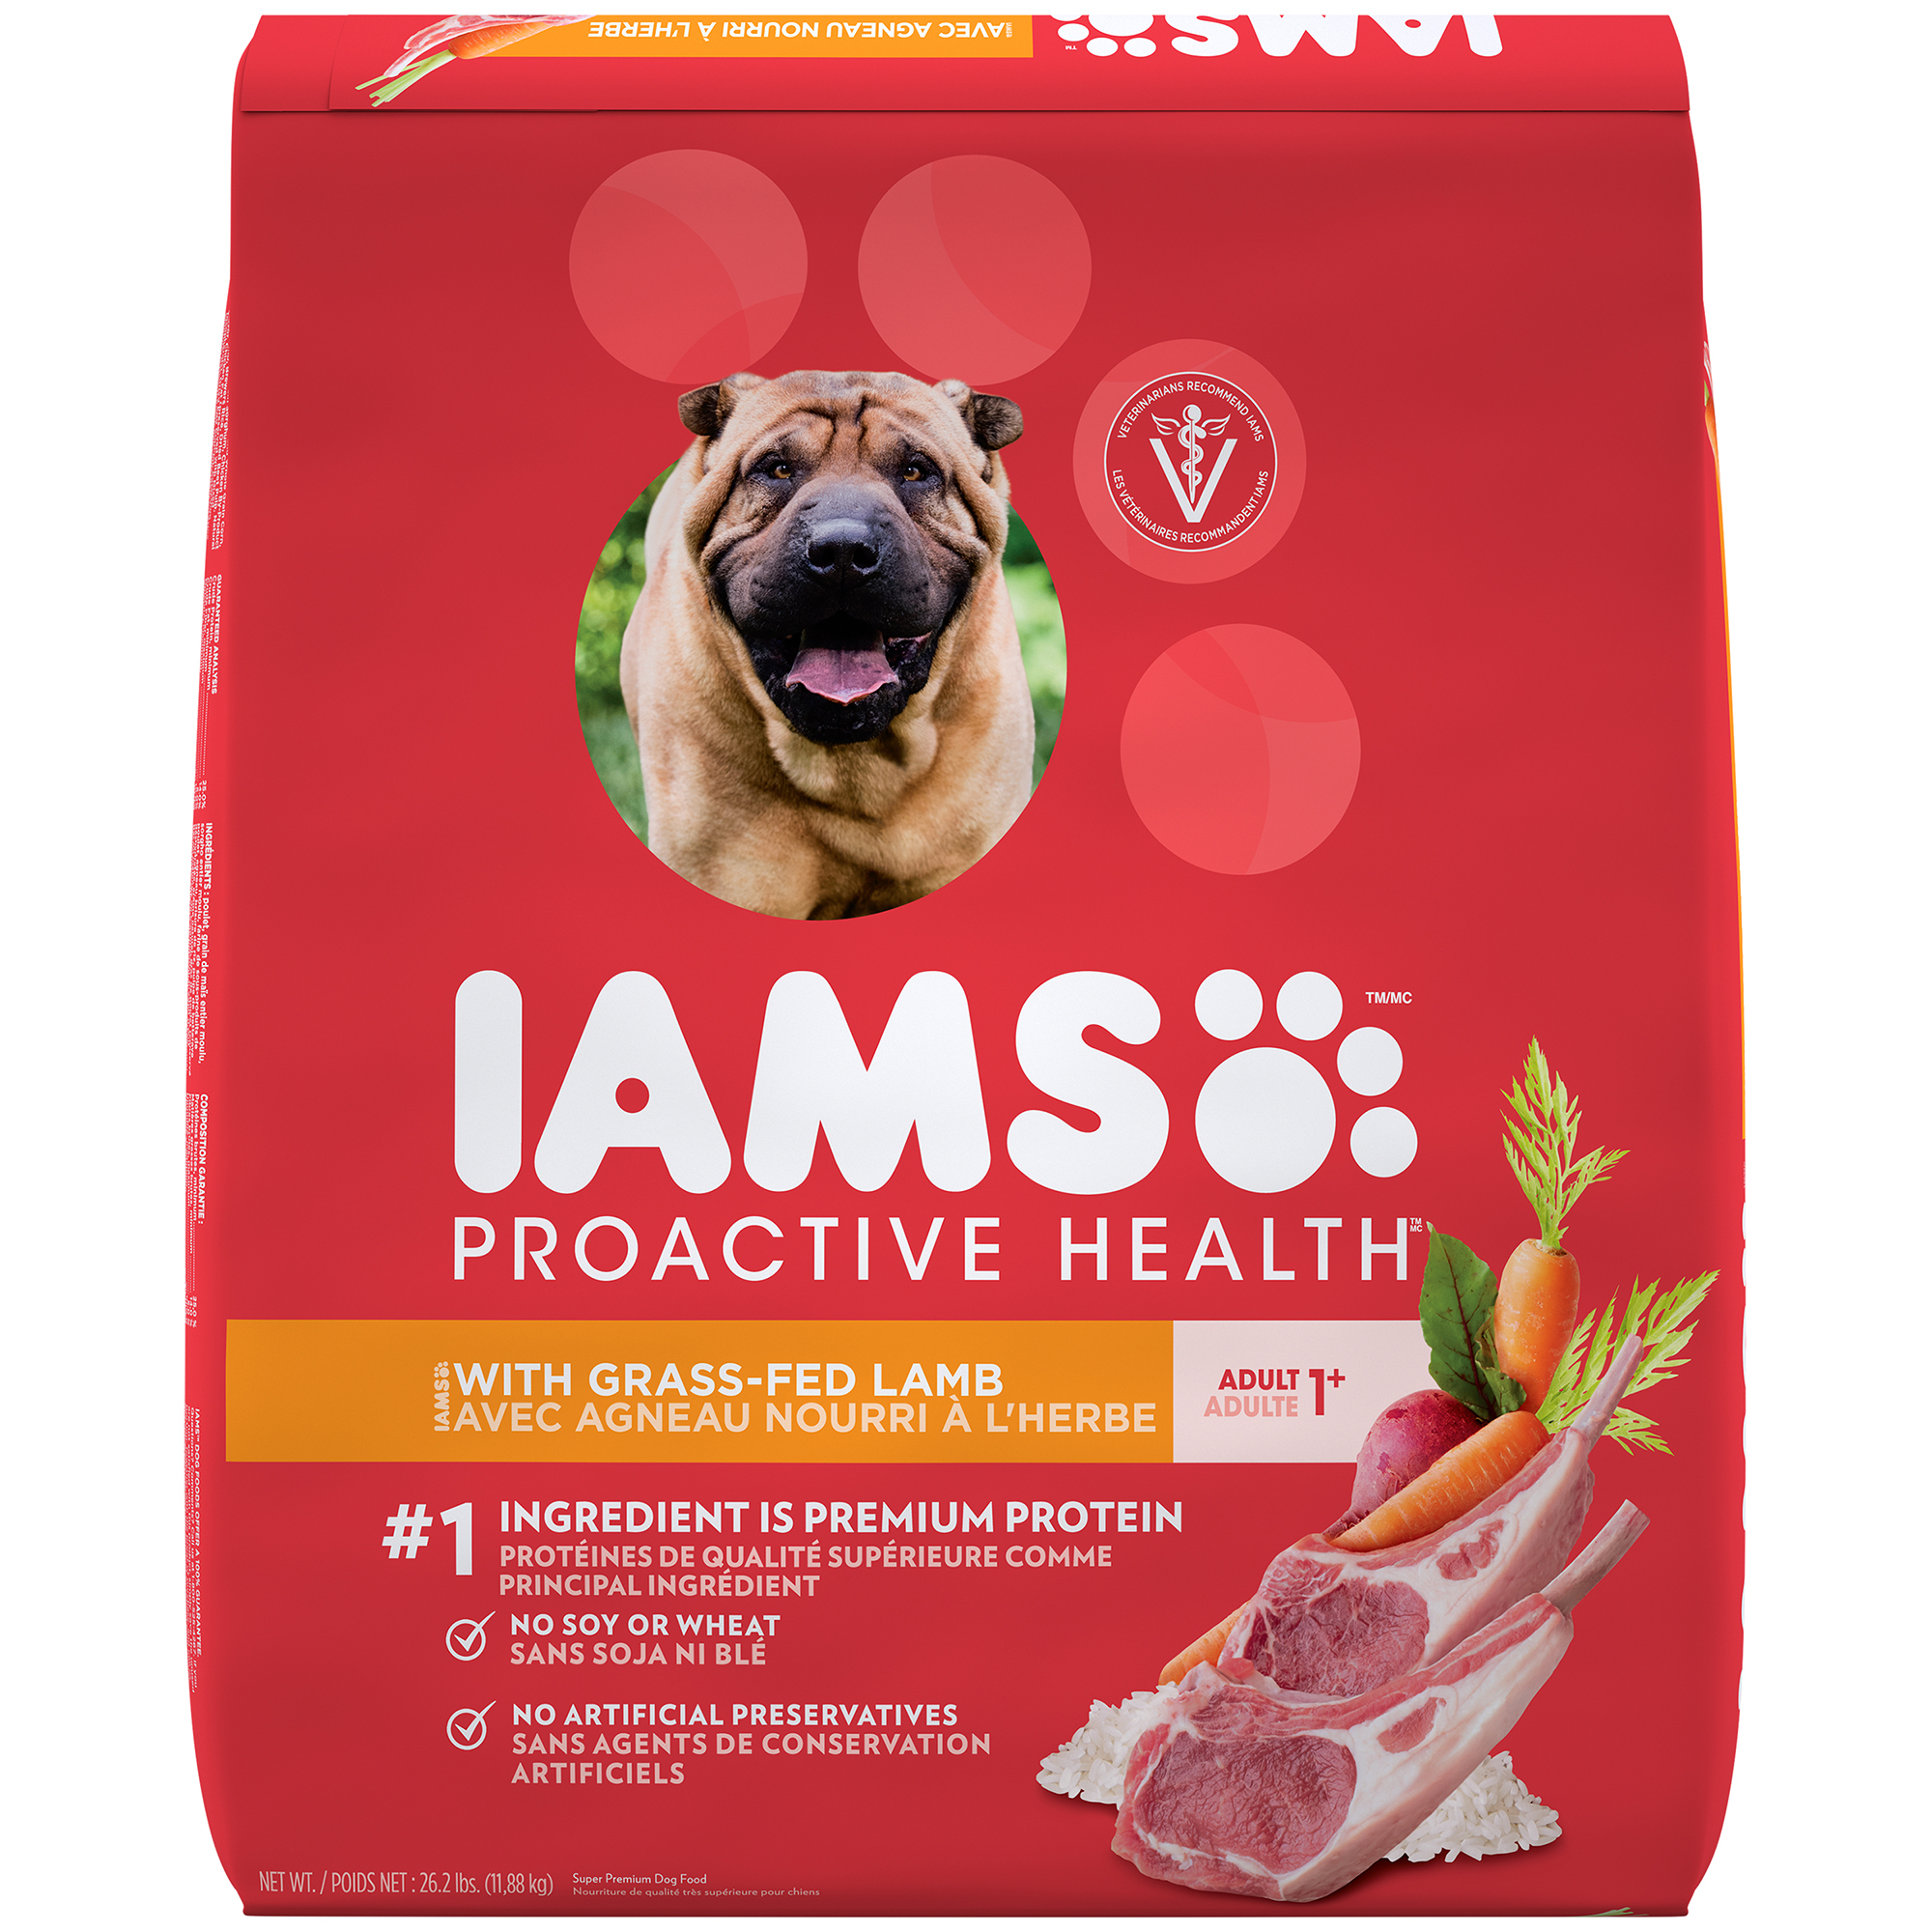 IAMS PROACTIVE HEALTH Adult With Grass-Fed Lamb Dry Dog Food 26.2 Pounds